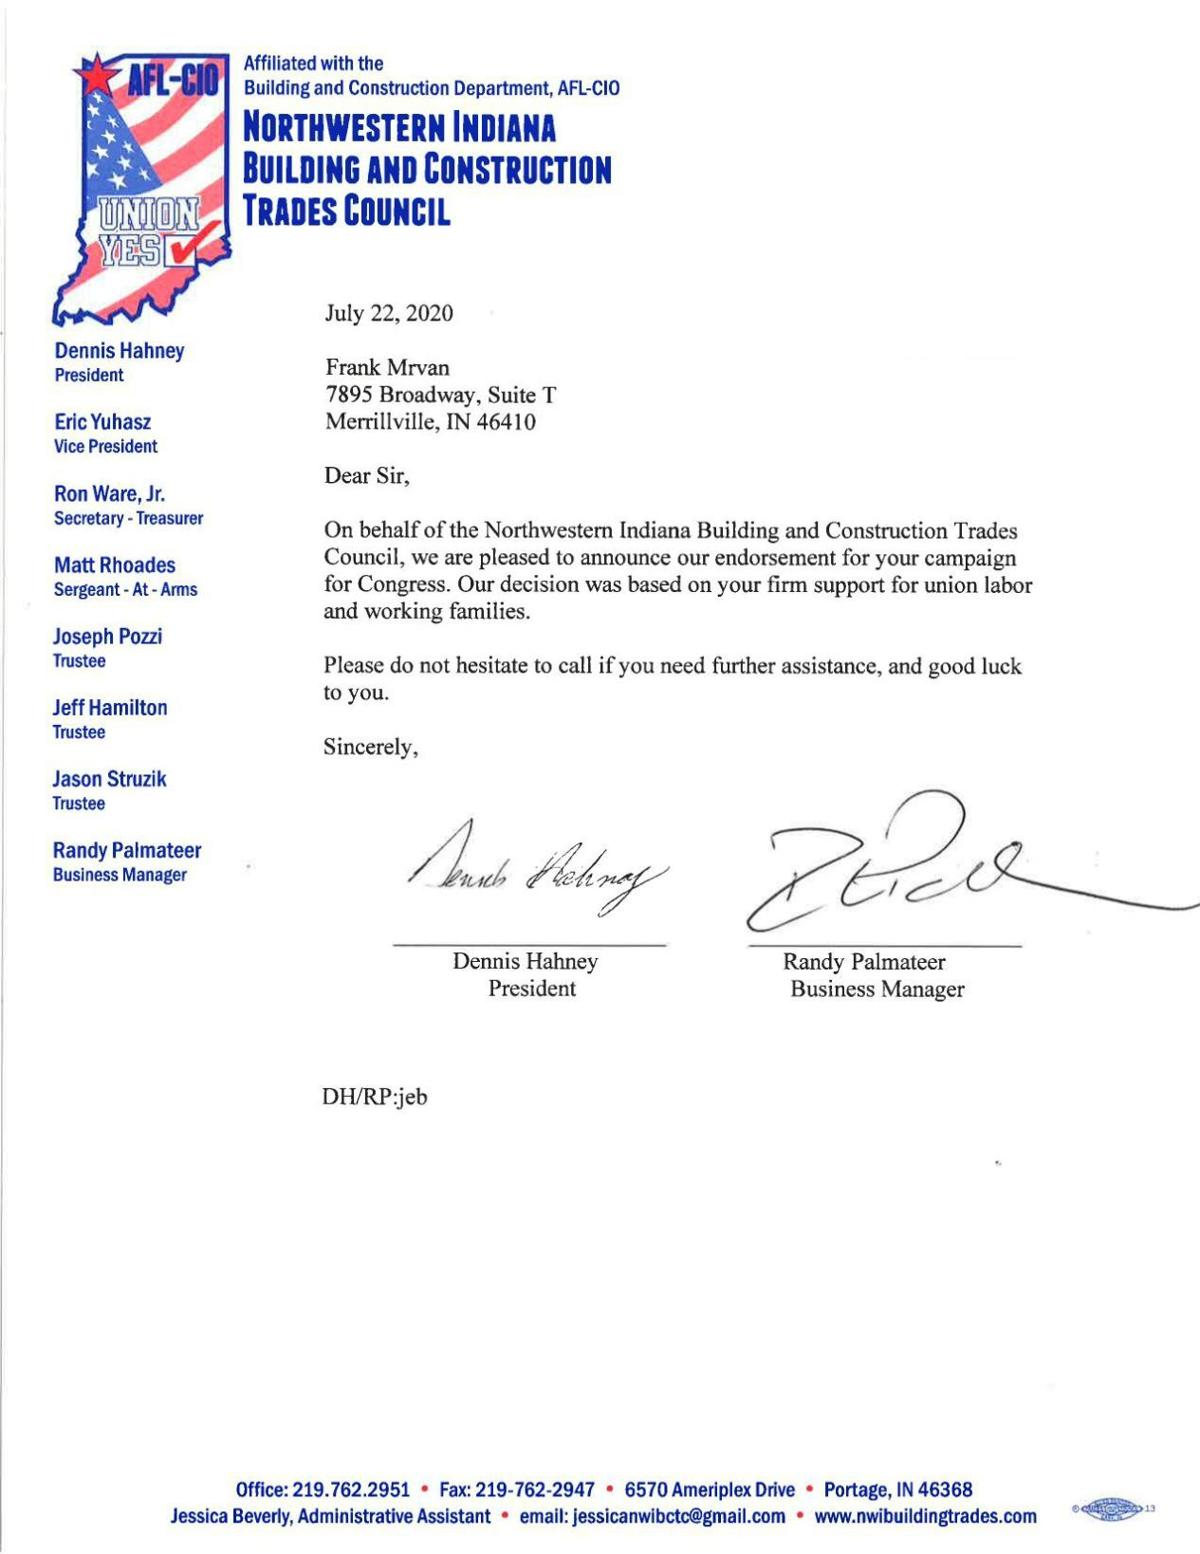 Northwestern Indiana Building and Construction Trades Council endorsement letter